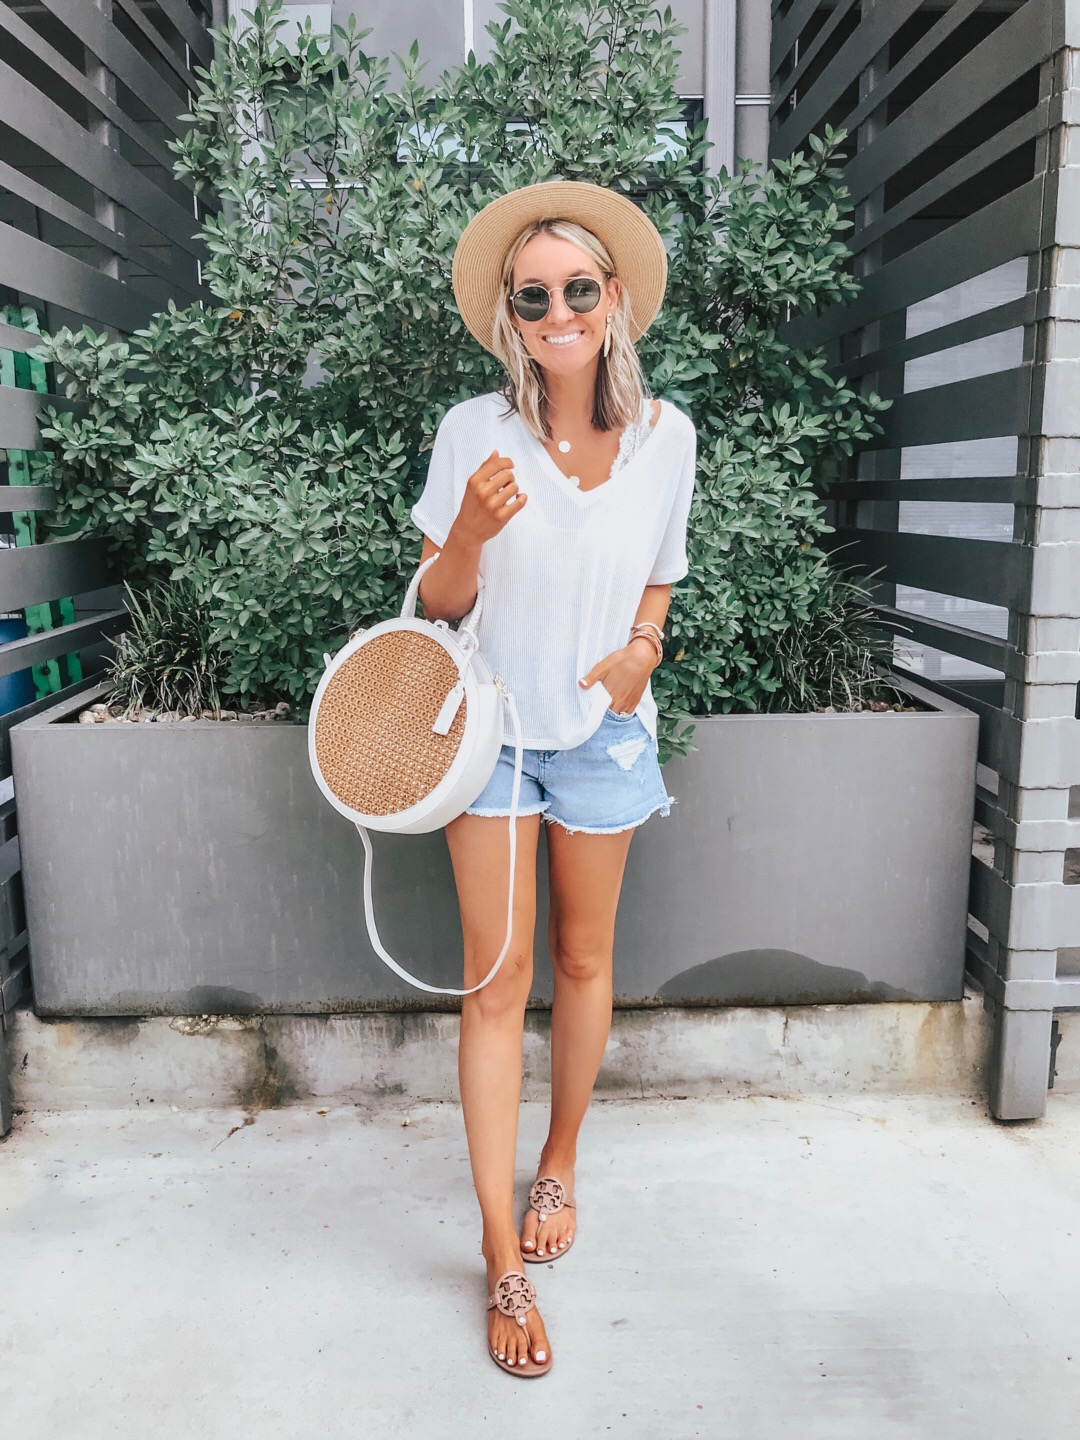 c6619daa89 Life By Lee - Austin Fashion Blogger - Austin Mommy and Lifestyle ...